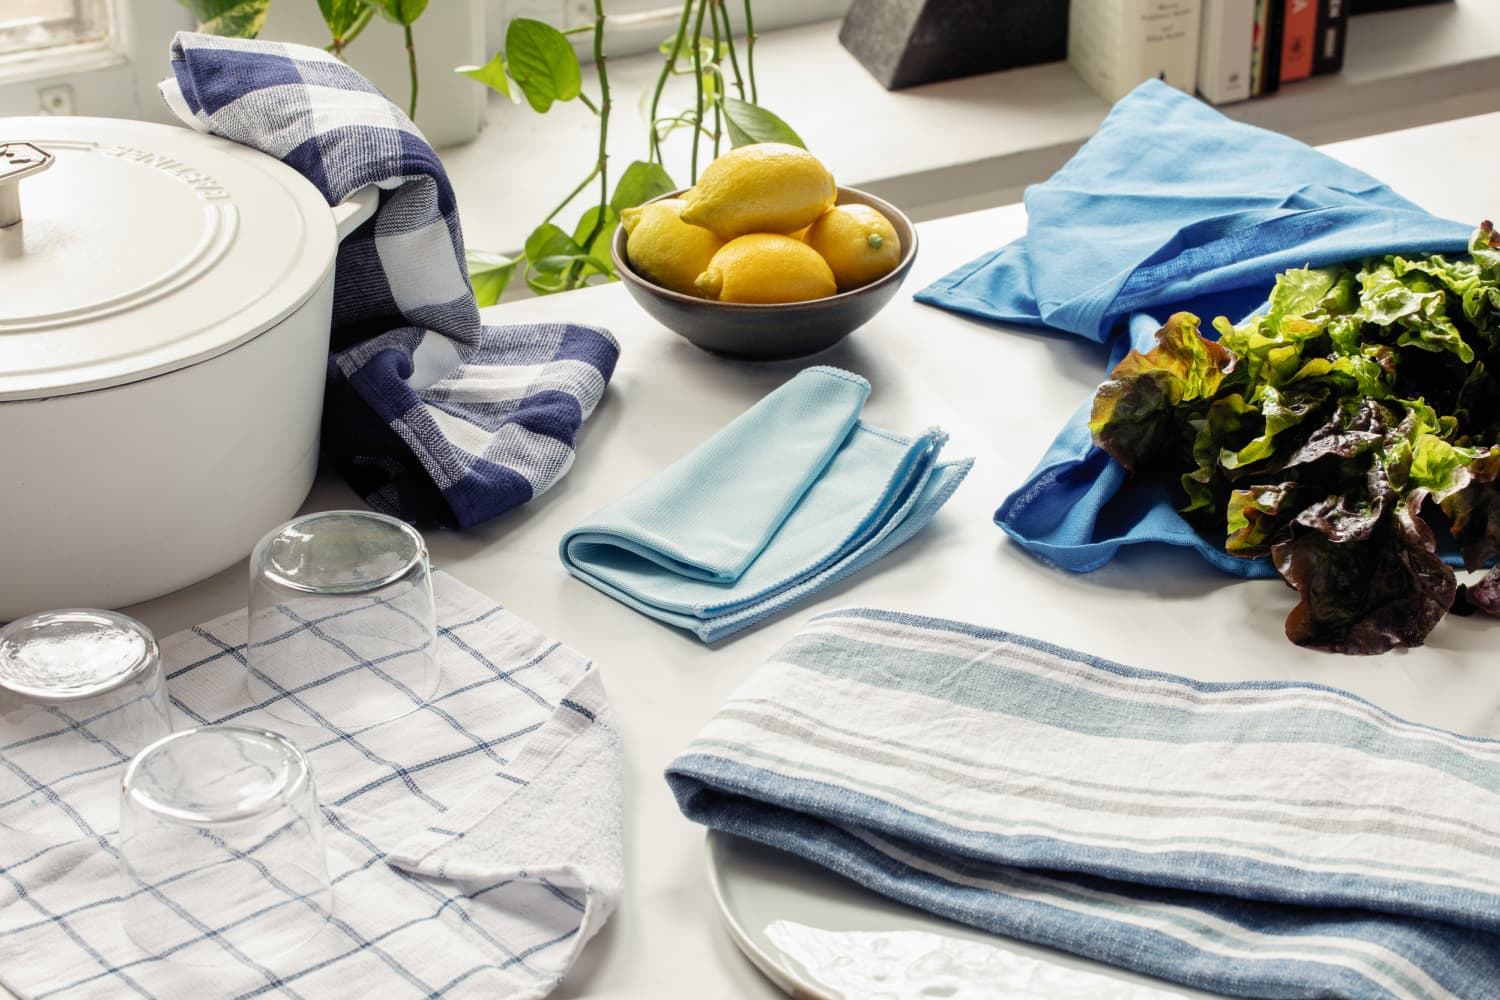 America's Test Kitchen Says This Is the Way to Make Your Kitchen Towels Look New Again — Of Course, I Had to Try It